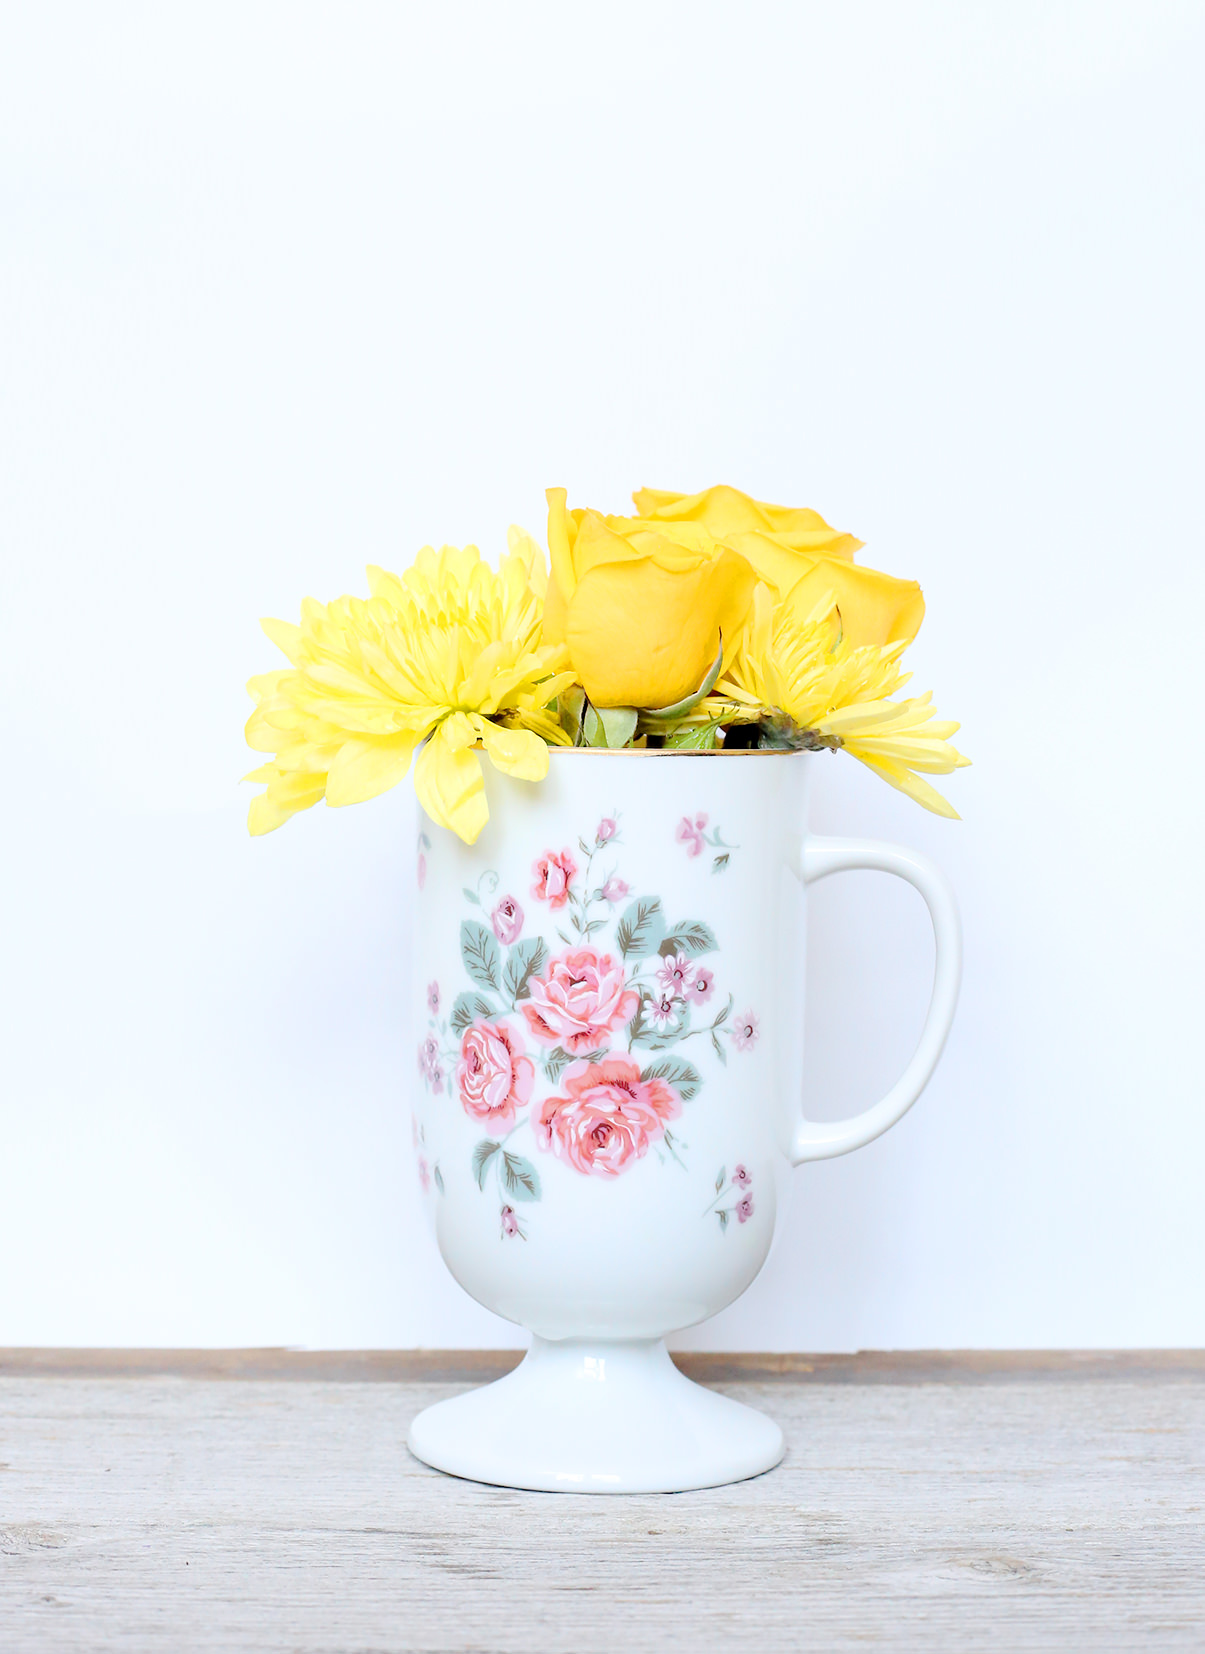 Color block your floral arrangements to make them look fresh and fancy! Add a teacup as your vase for extra elegance!